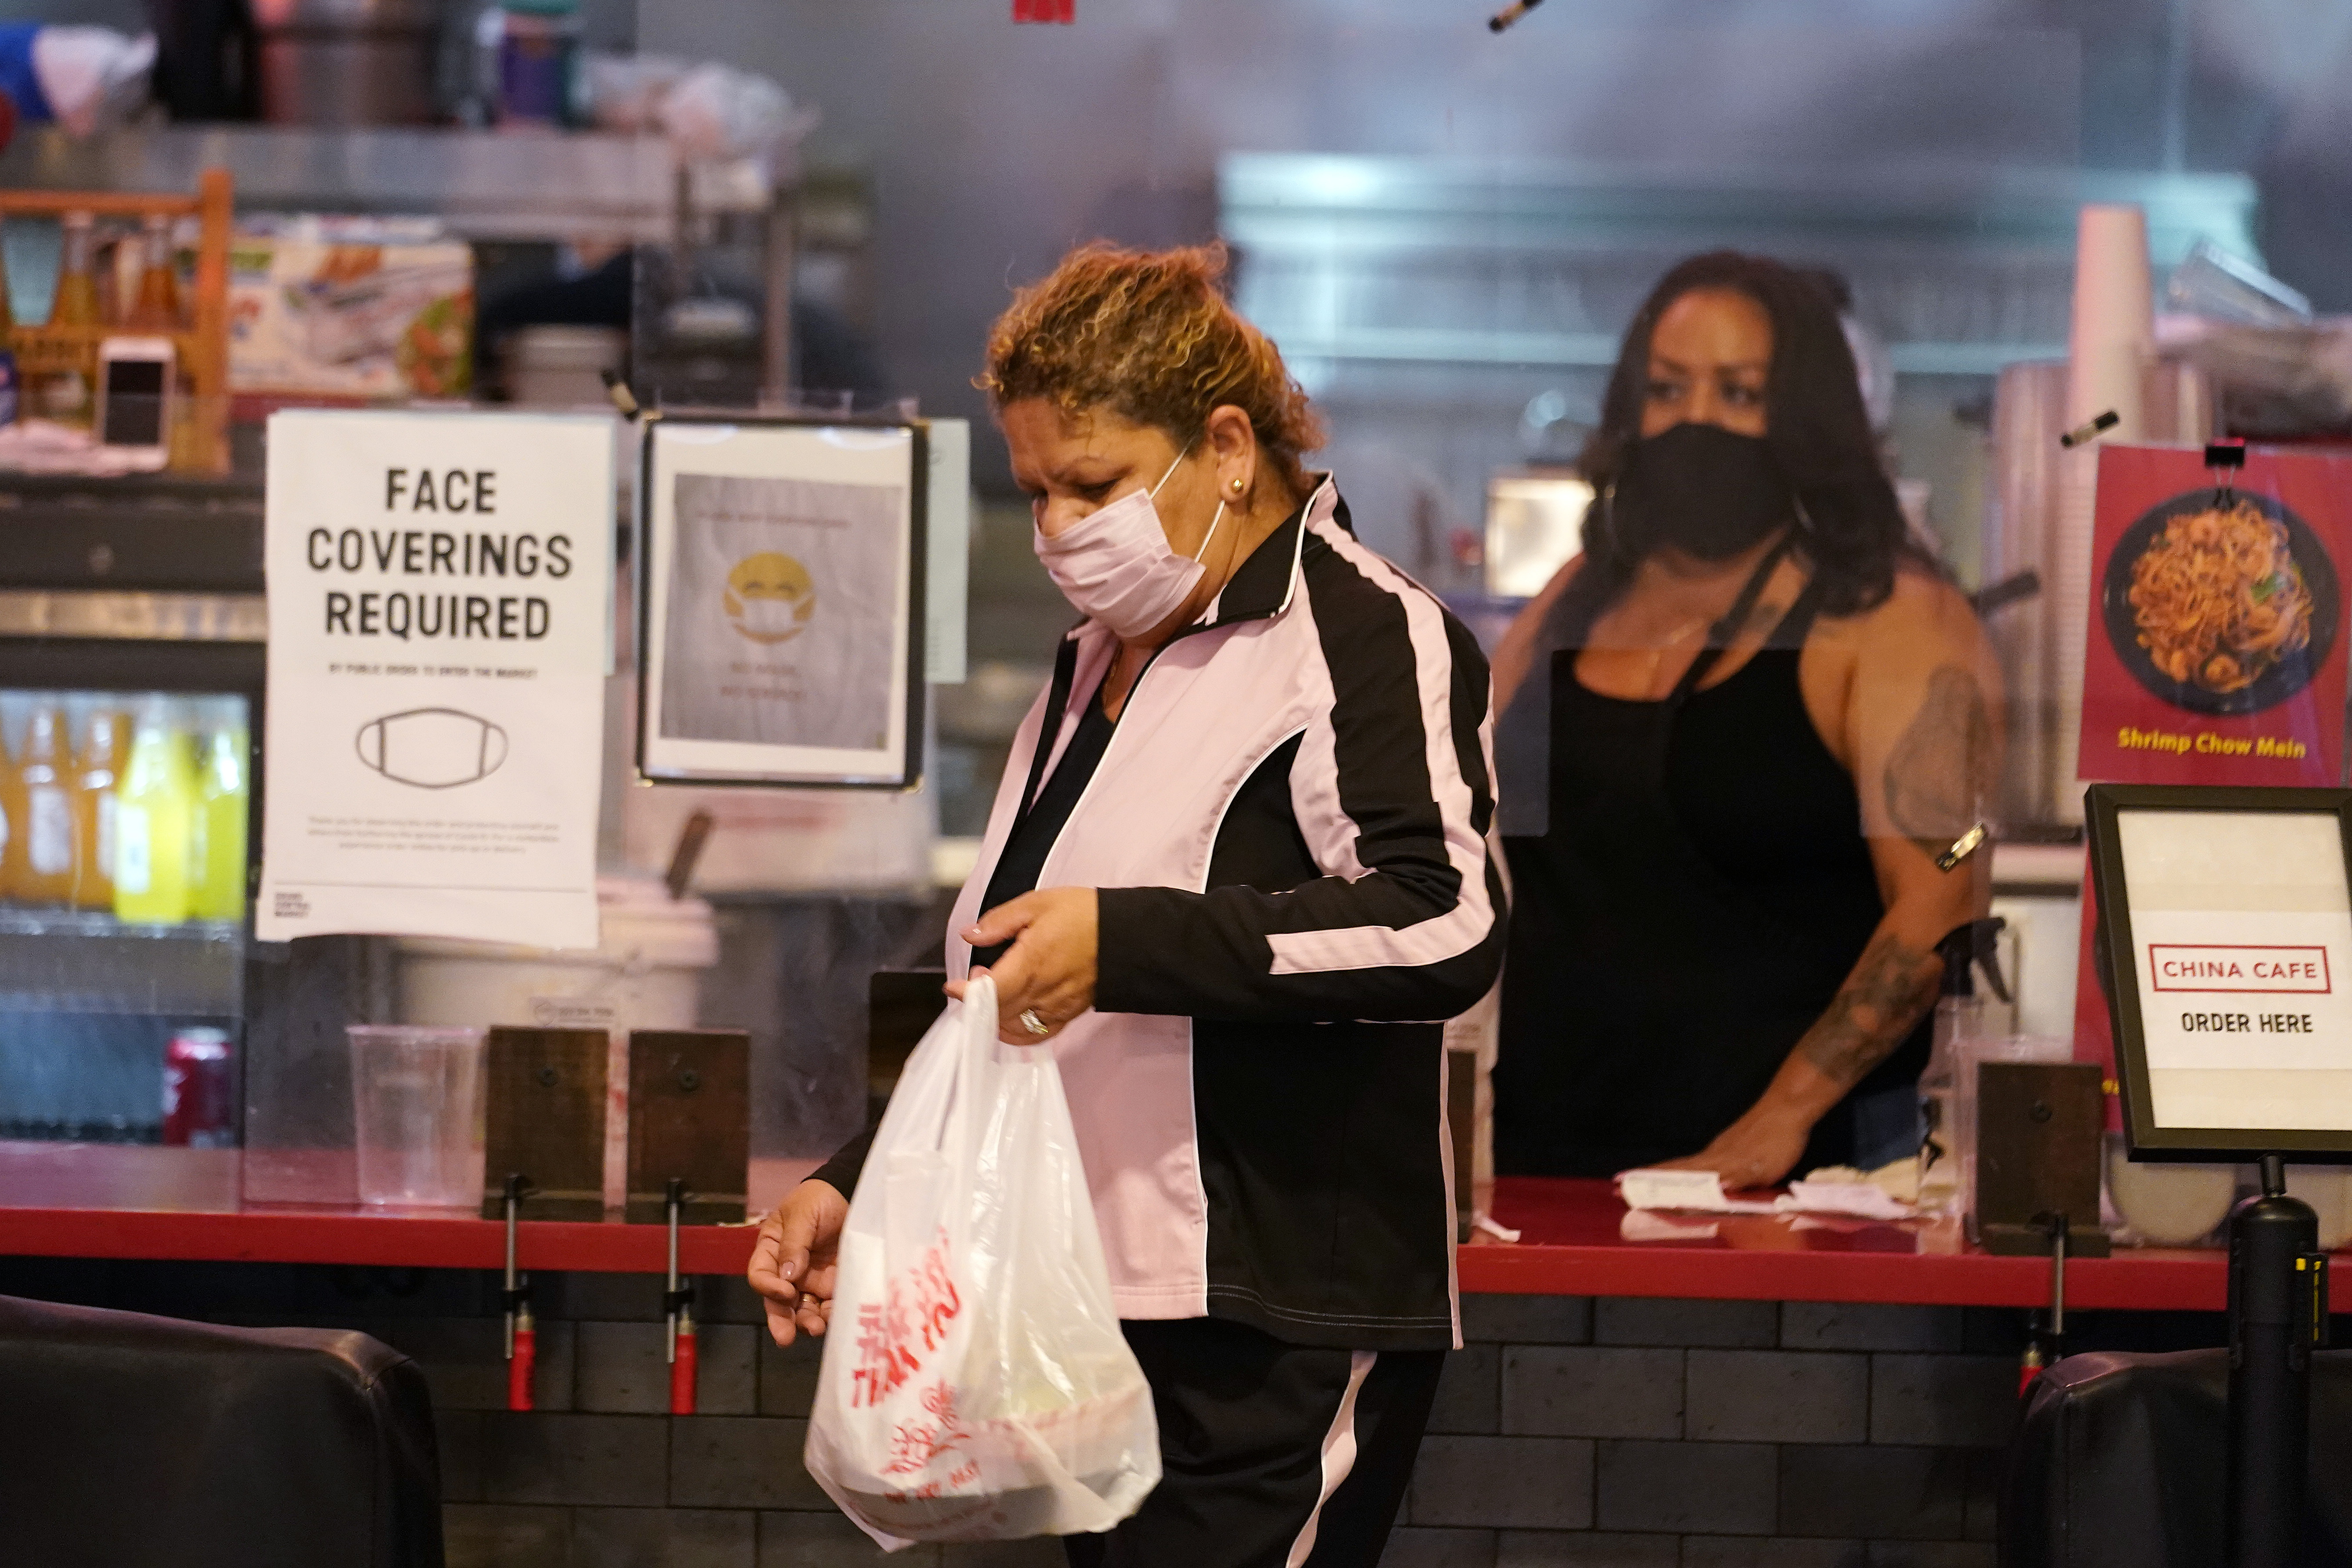 A customer picks up food at the Grand Central Market Monday, Nov. 16, 2020, in Los Angeles. California Gov. Gavin Newsom announced Monday, Nov. 16, 2020, that due to the rise of COVID-19 cases, Some counties have been moved to the state's most restrictive set of rules, which prohibit indoor dining. The new rules begin, Tuesday, Nov. 17. (AP Photo/Marcio Jose Sanchez)